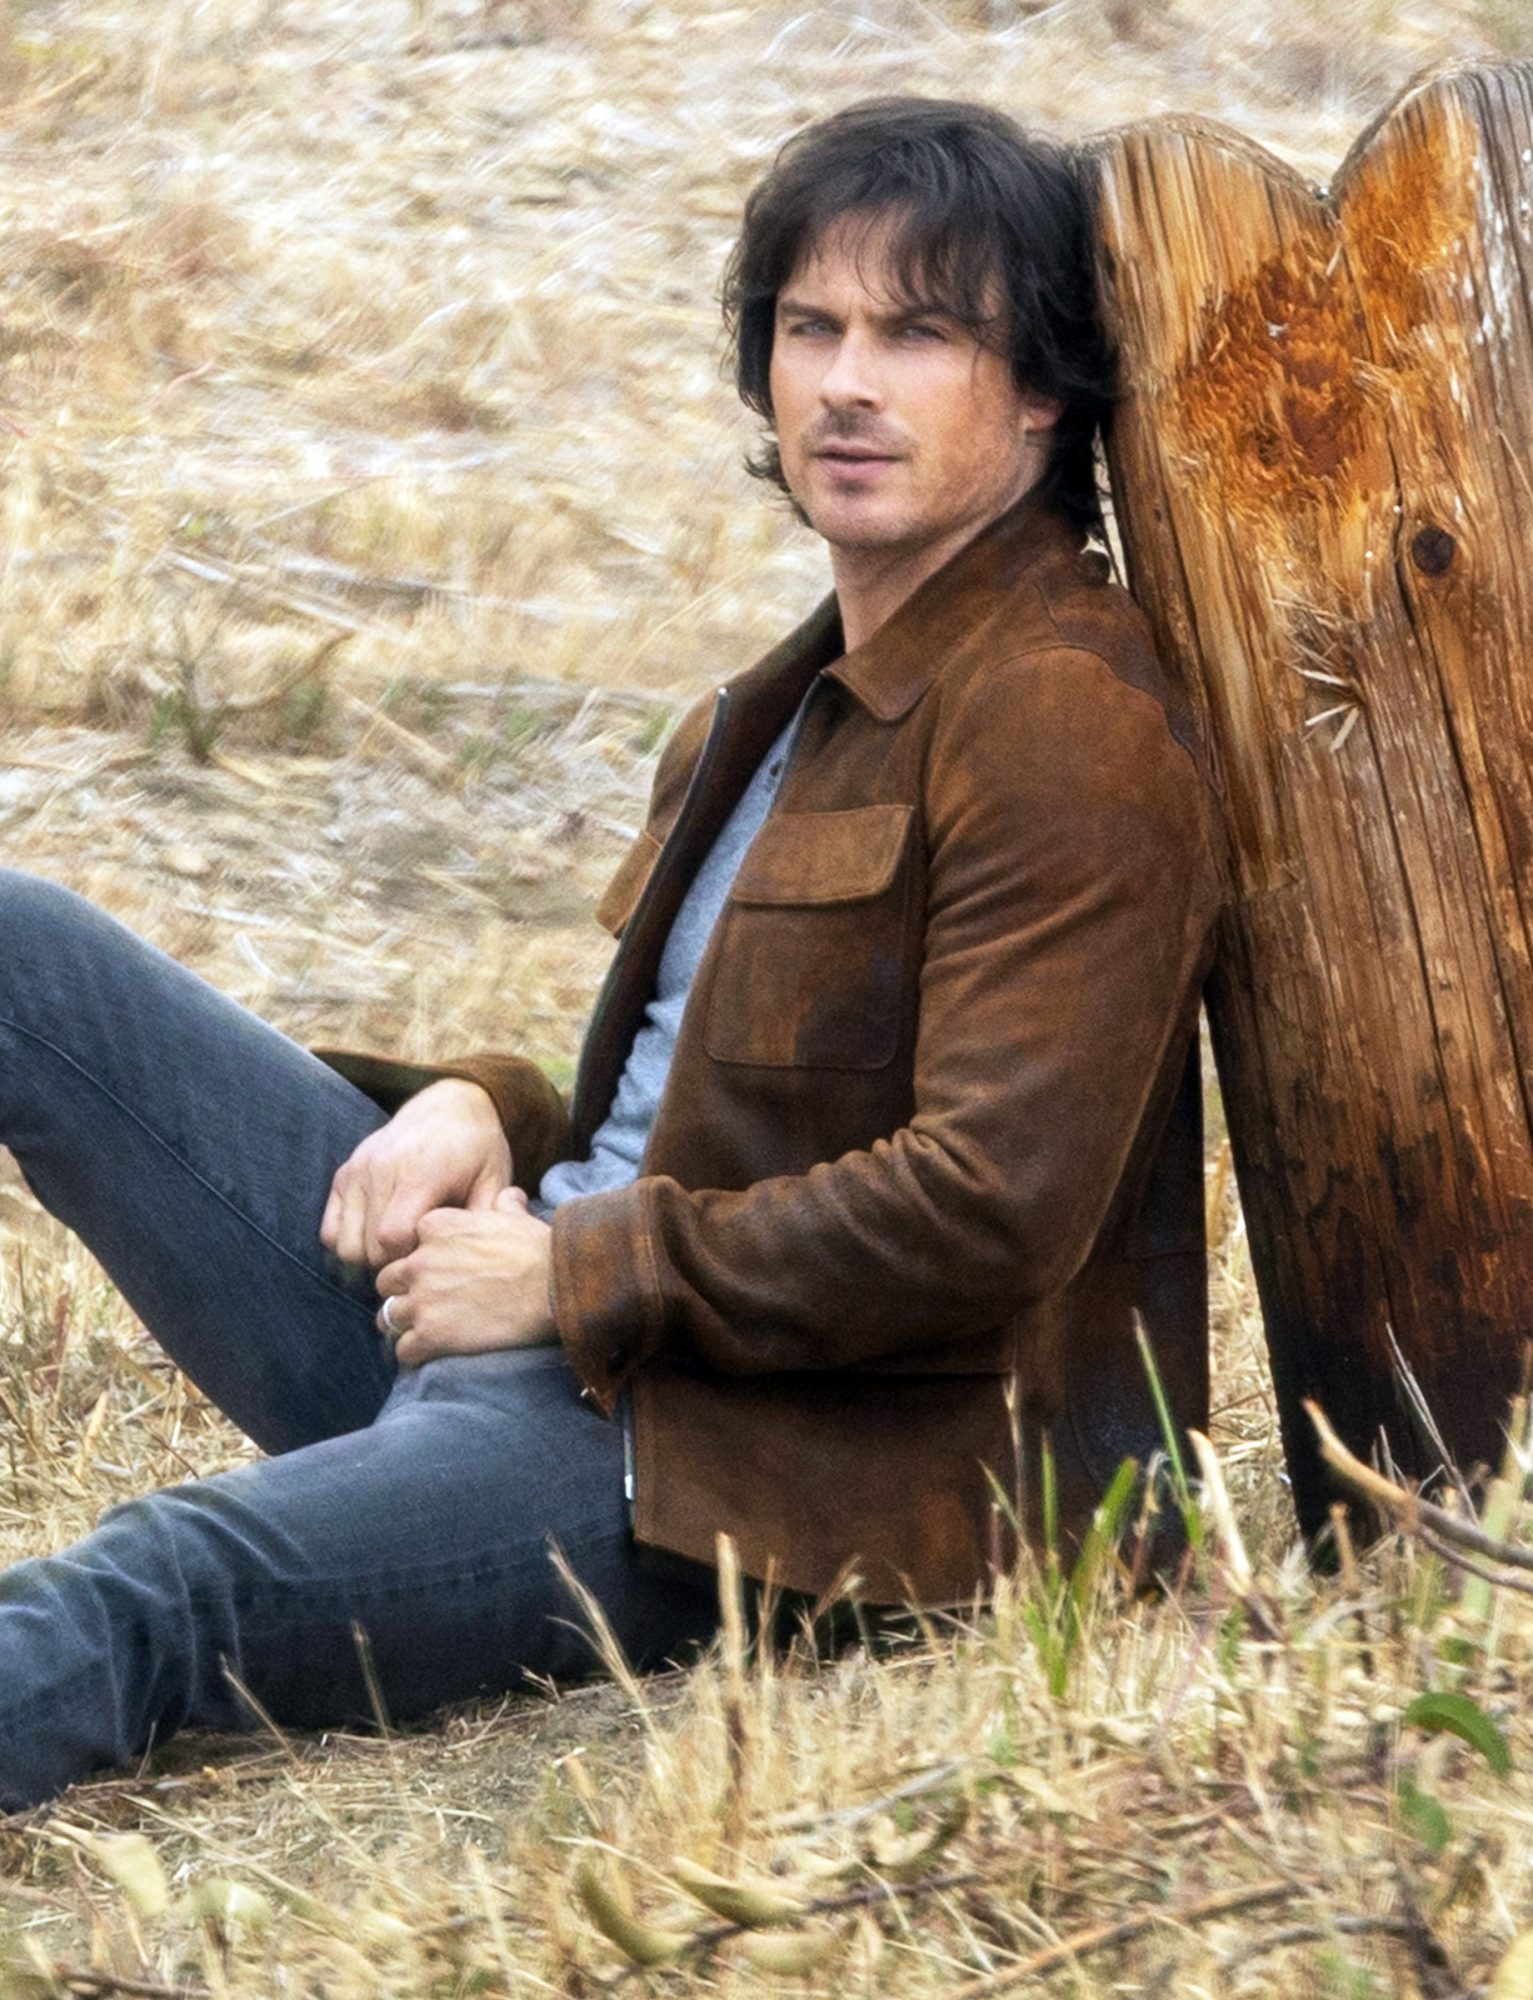 Ian Somerhalder shares his best angles during a photoshoot in Malibu